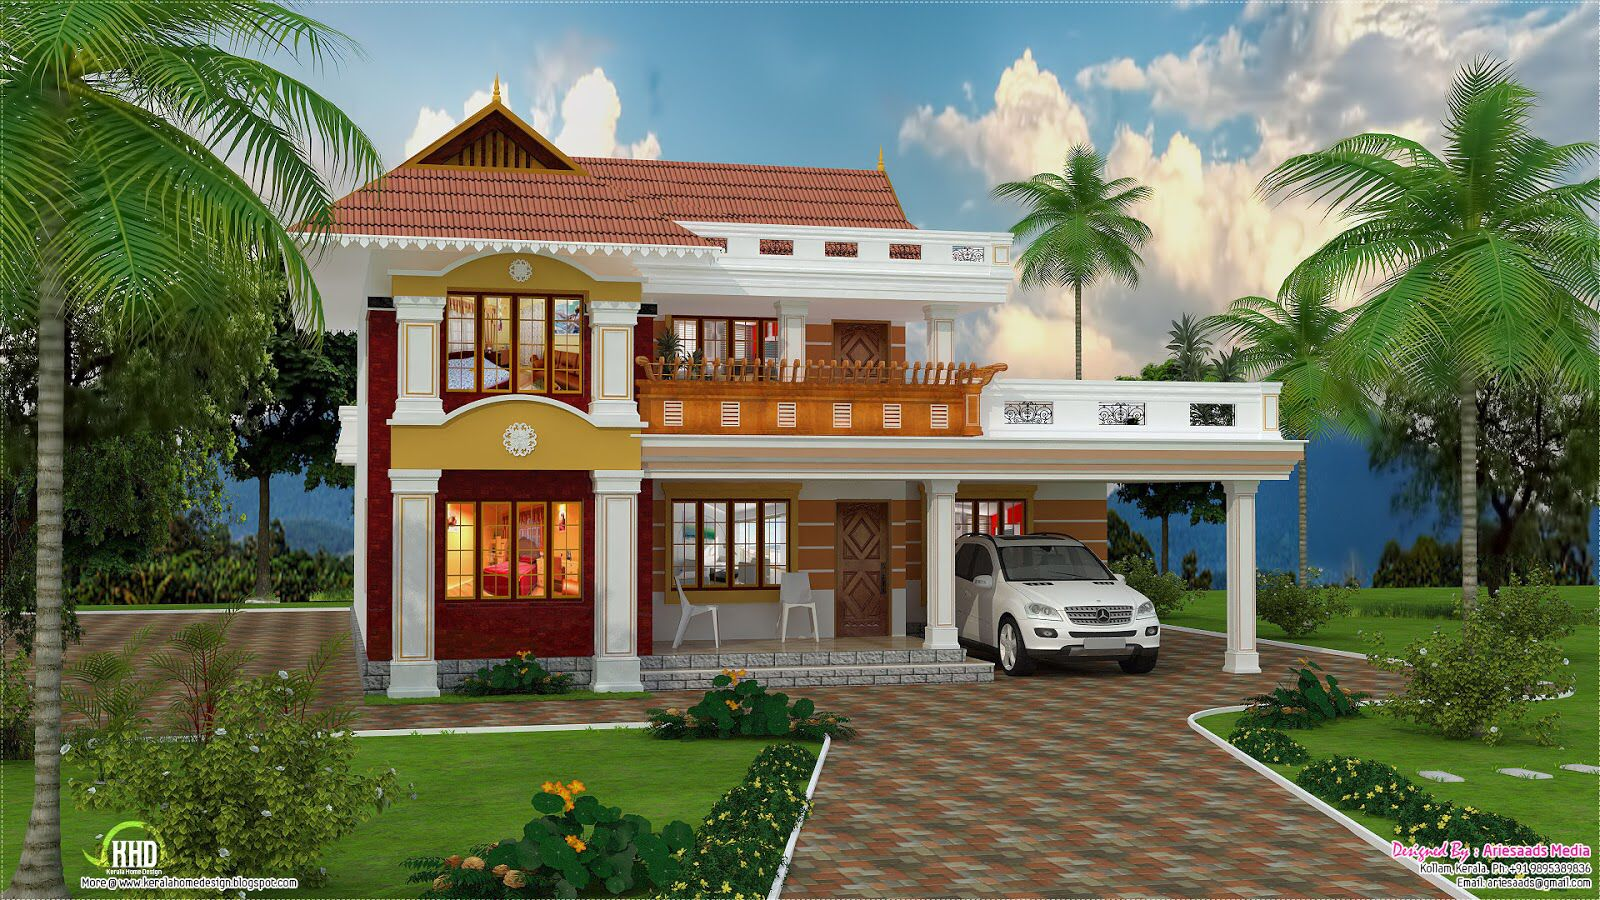 Image from http://meddiodesign.com/wp-content/uploads/2015/01/exterior-kerala-houses-with-beautiful-landscape-house-designs-home-with-level-floor-house-brown-wall-patterned-and-two-white-seating-also-open-car-garage-with-stone-driveway-and-surrounded-by-lawns-an.jpg.